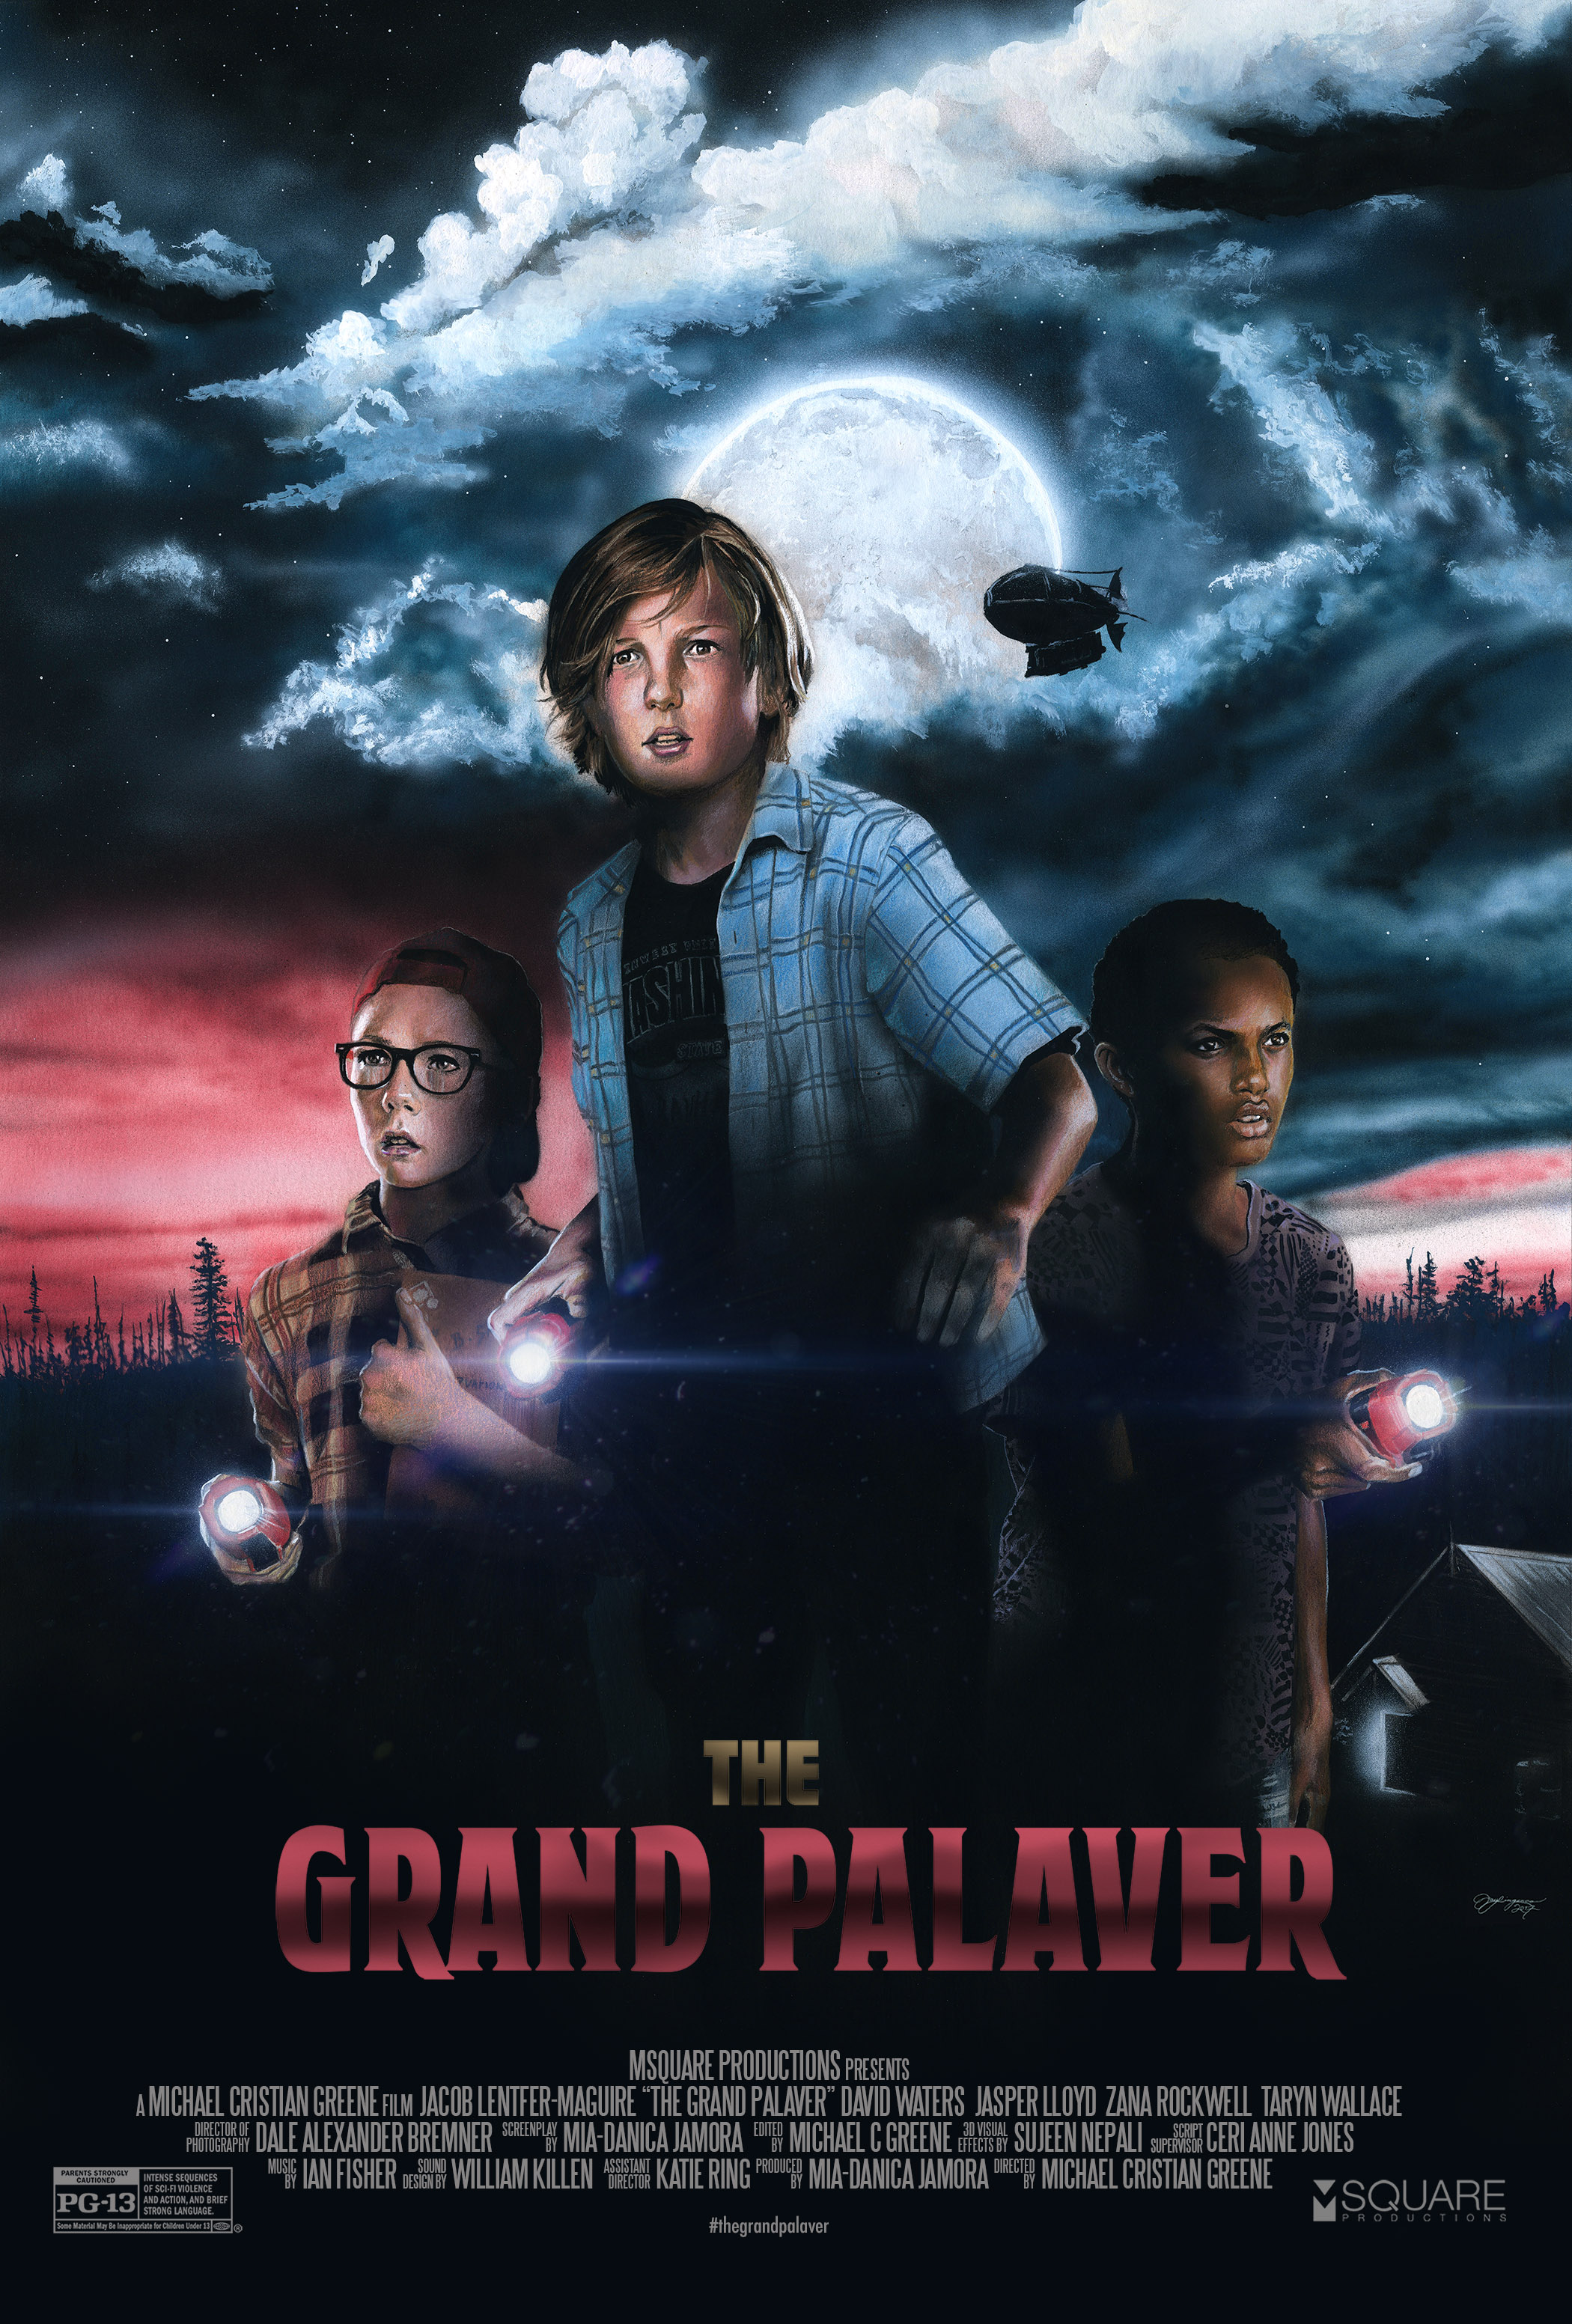 The Grand Palaver | 2017  Set in suburban America 1990's, three friends spend their summer break at Tommy's house. Tommy has recently taken notice of his old neighbour Henry and the strange items in his backyard. Over the course of two days the kids uncover an unsettling phenomenal truth to Henry's past.